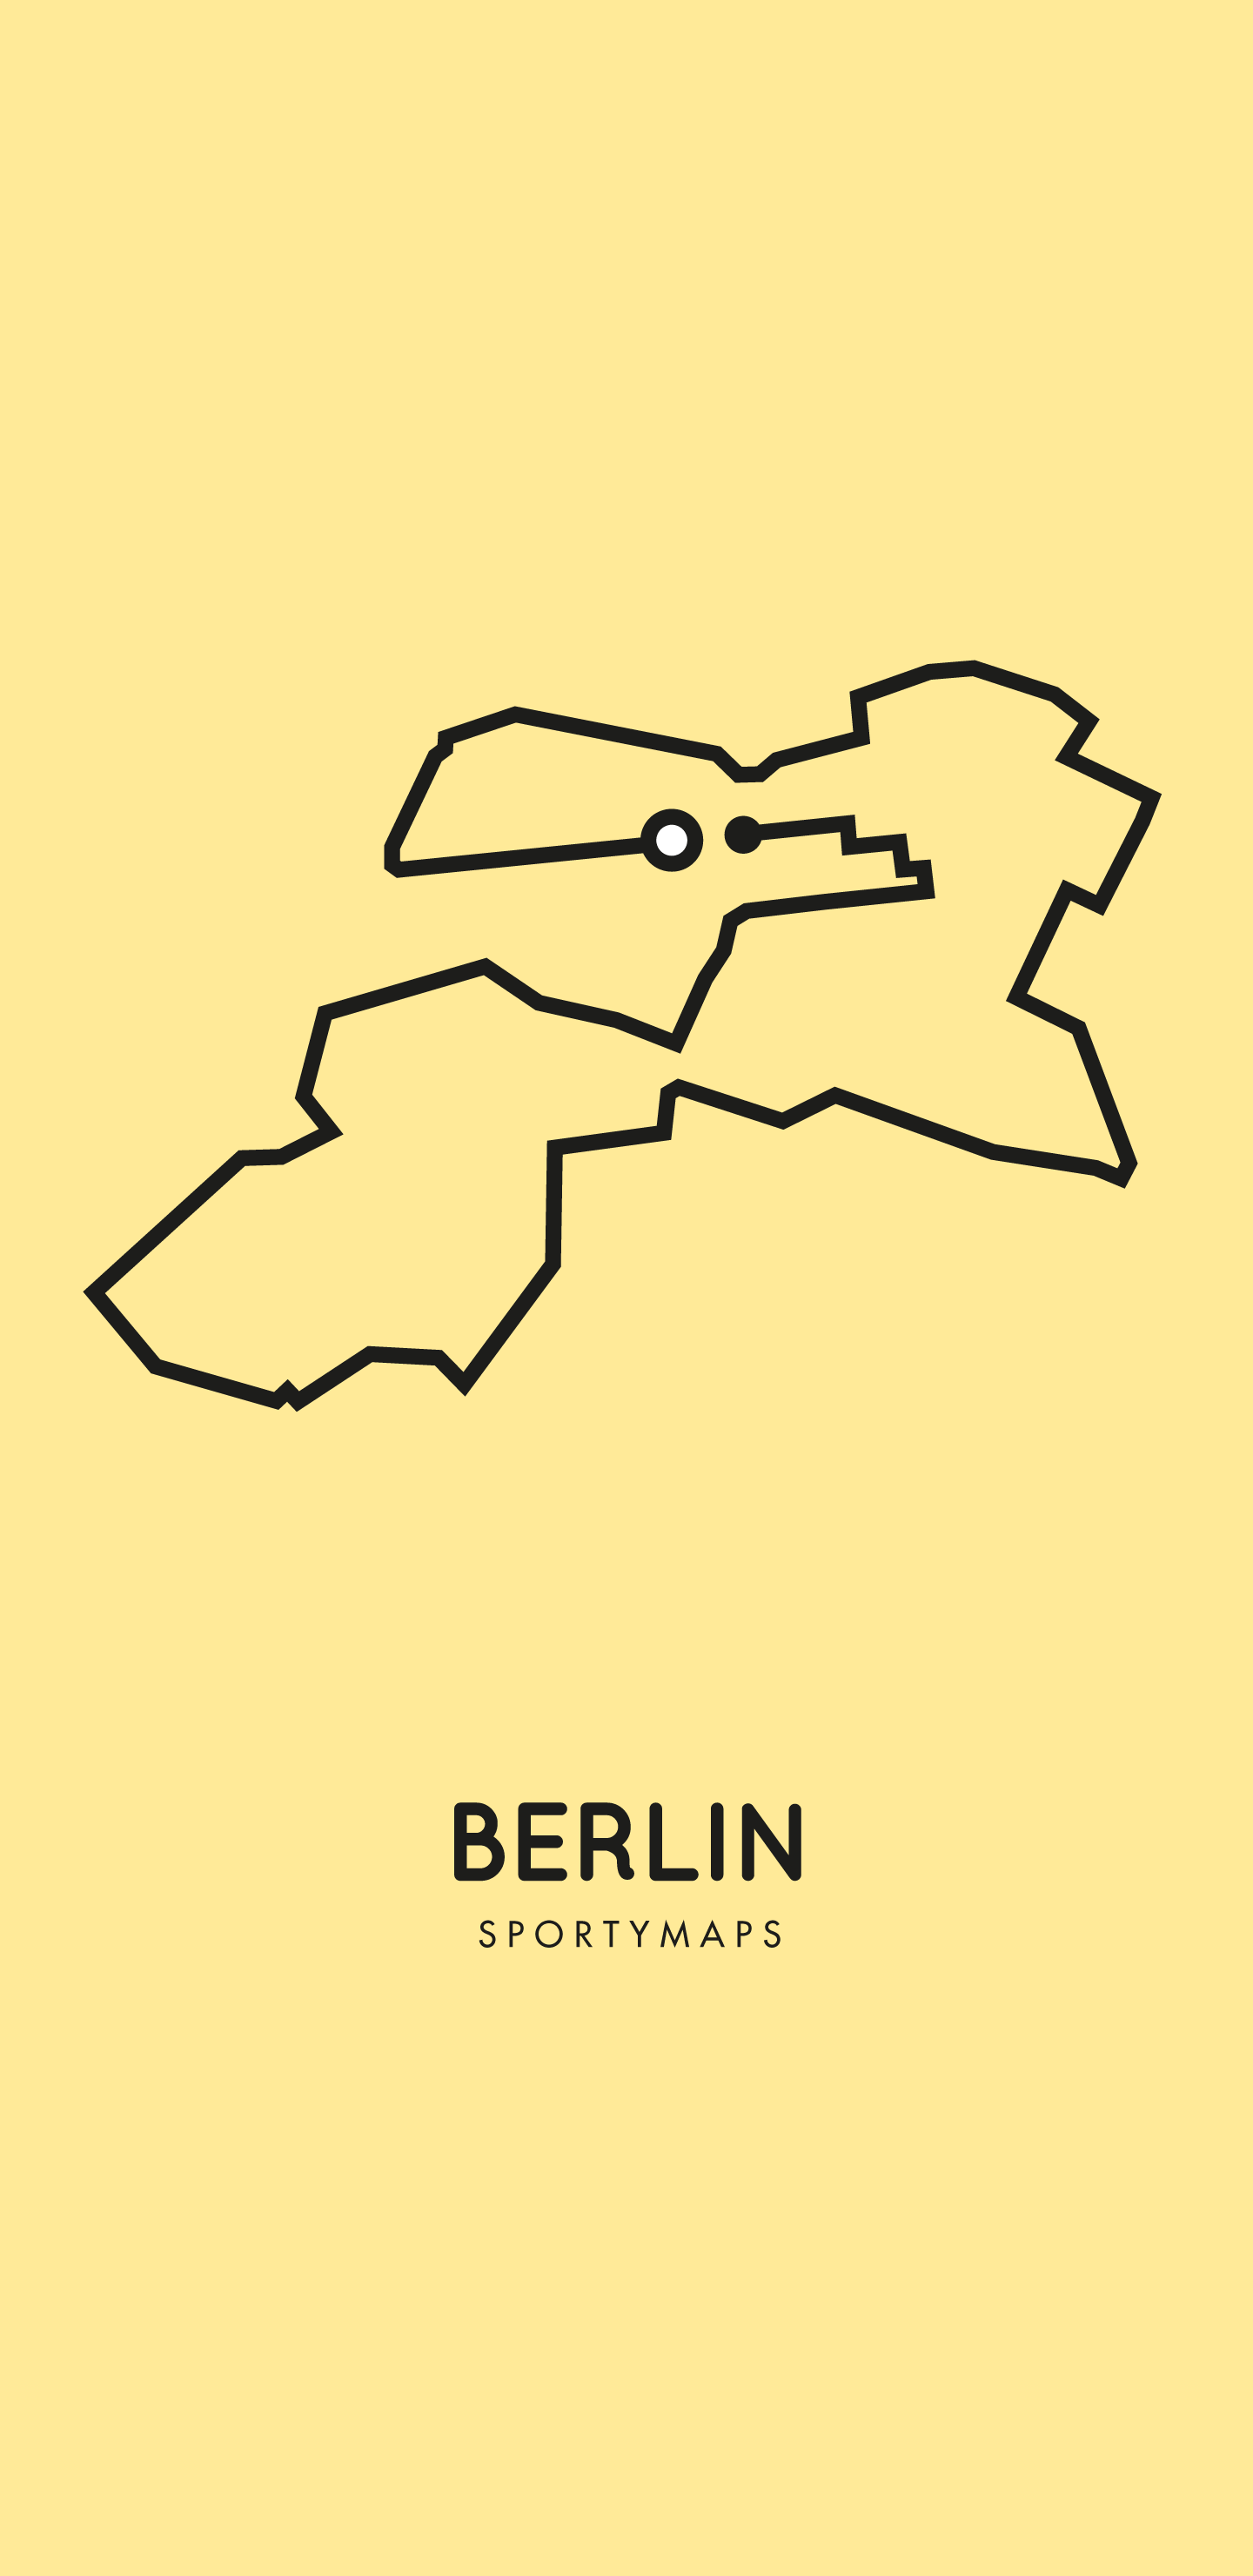 Sportymaps-Berlin-marathon-yellow